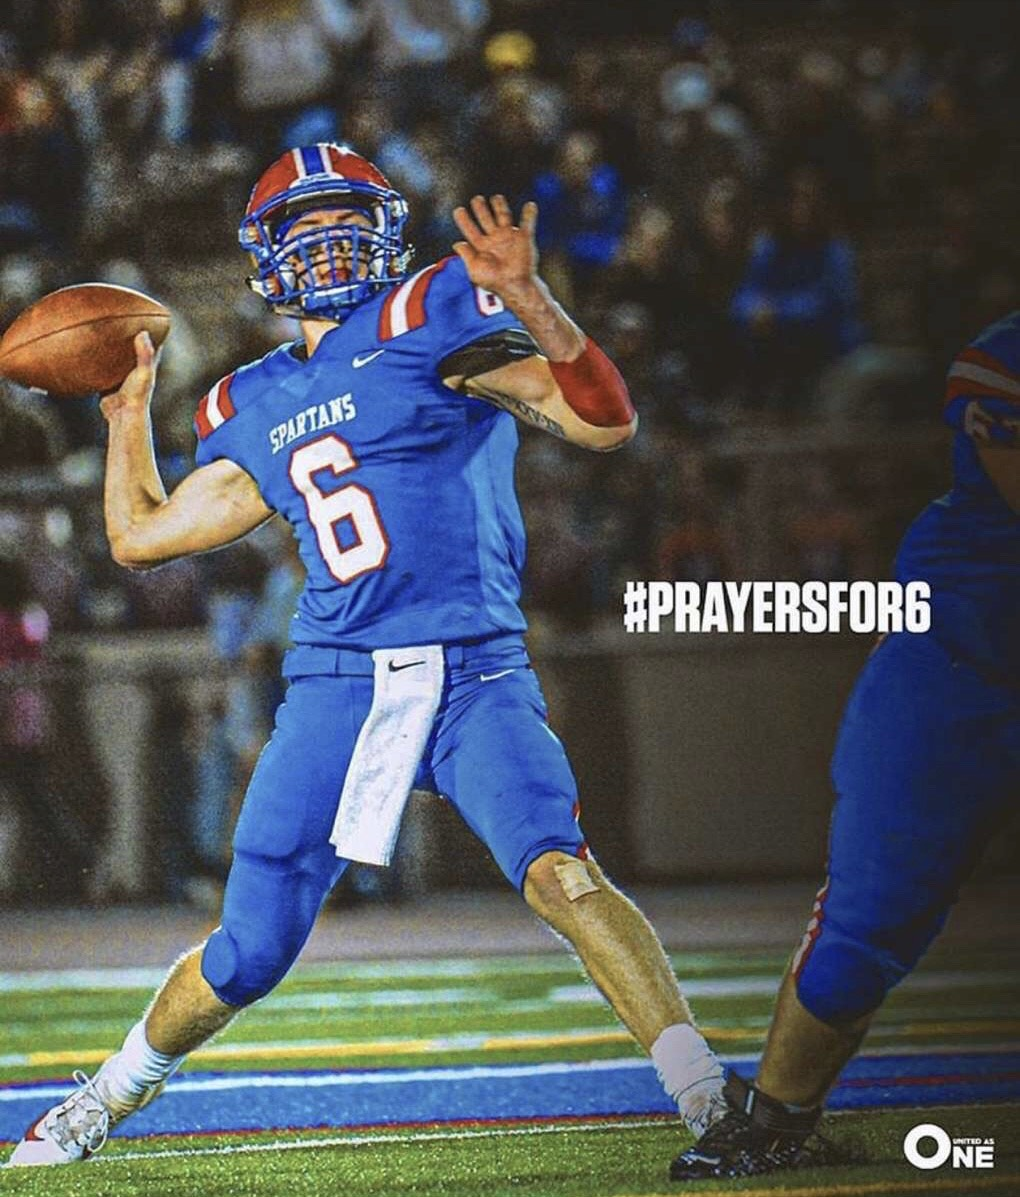 North Schuylkill senior, Jaden Leiby, is throwing the ball to another teammate. During the game on October 25, he was seriously injured making a tackle. Countless thoughts and prayers outpoured from the community in hopes of a speedy recovery. Hashtags like the one pictured above have been circulating throughout social media in support of Jaden.